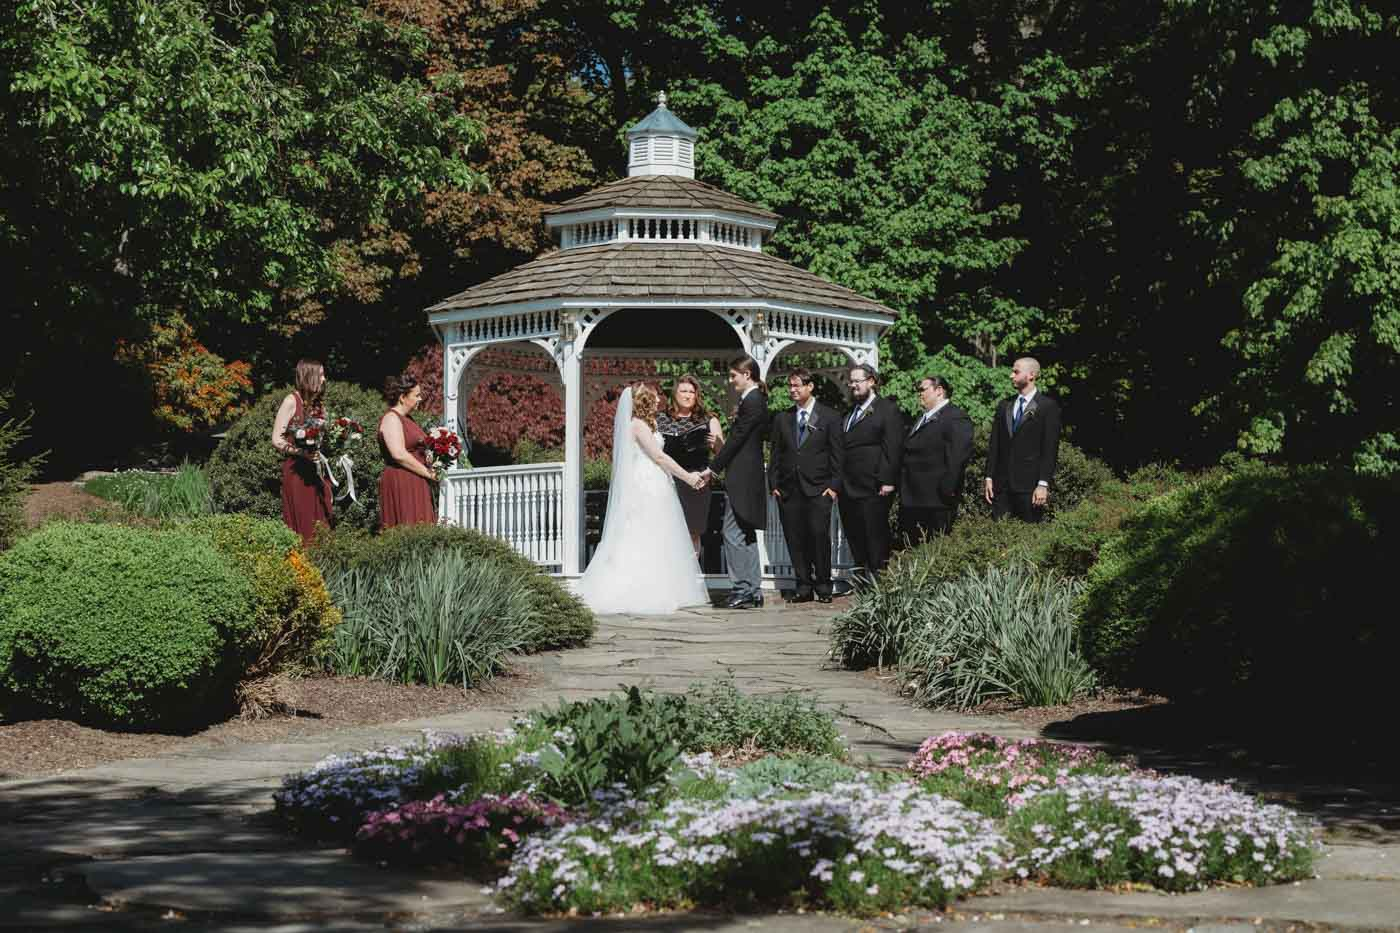 gazebo-wedding-couple-exchanging-vows-before-guests